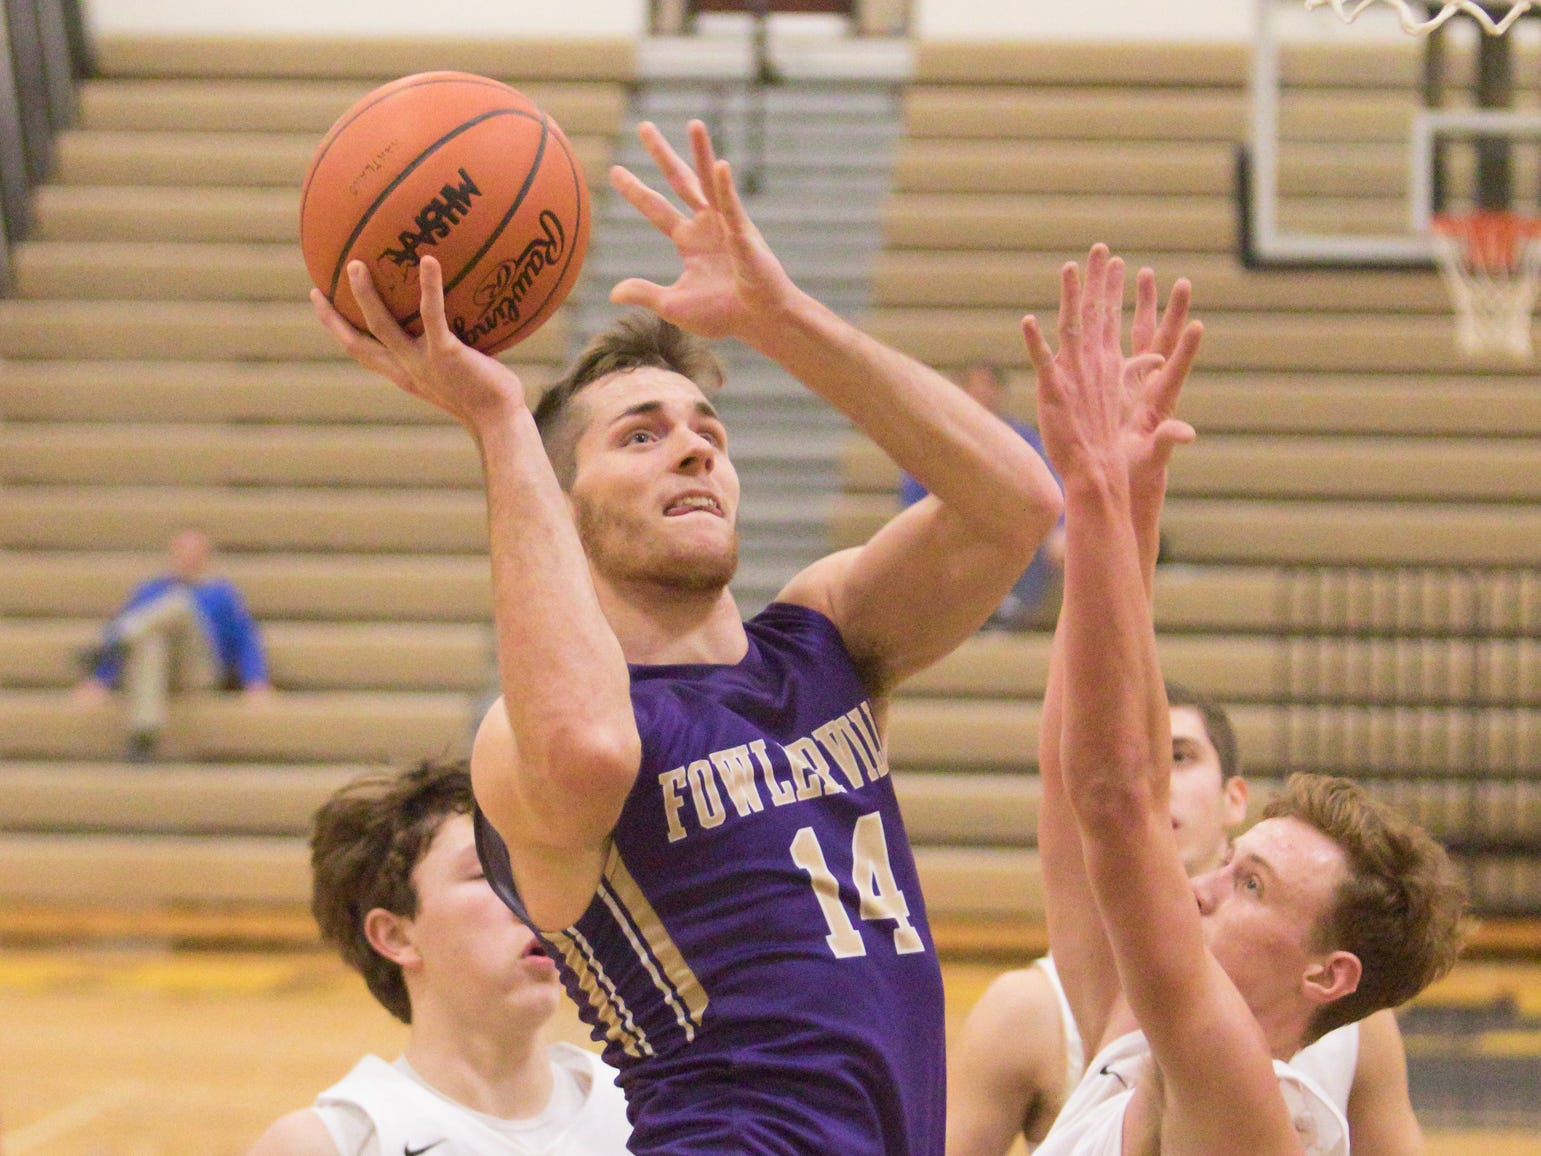 Geoffrey Knaggs of Fowlerville was the high scorer of the night in the game against the Dexter Dreadnaughts Friday, Dec. 28, 2018 in Hartland.